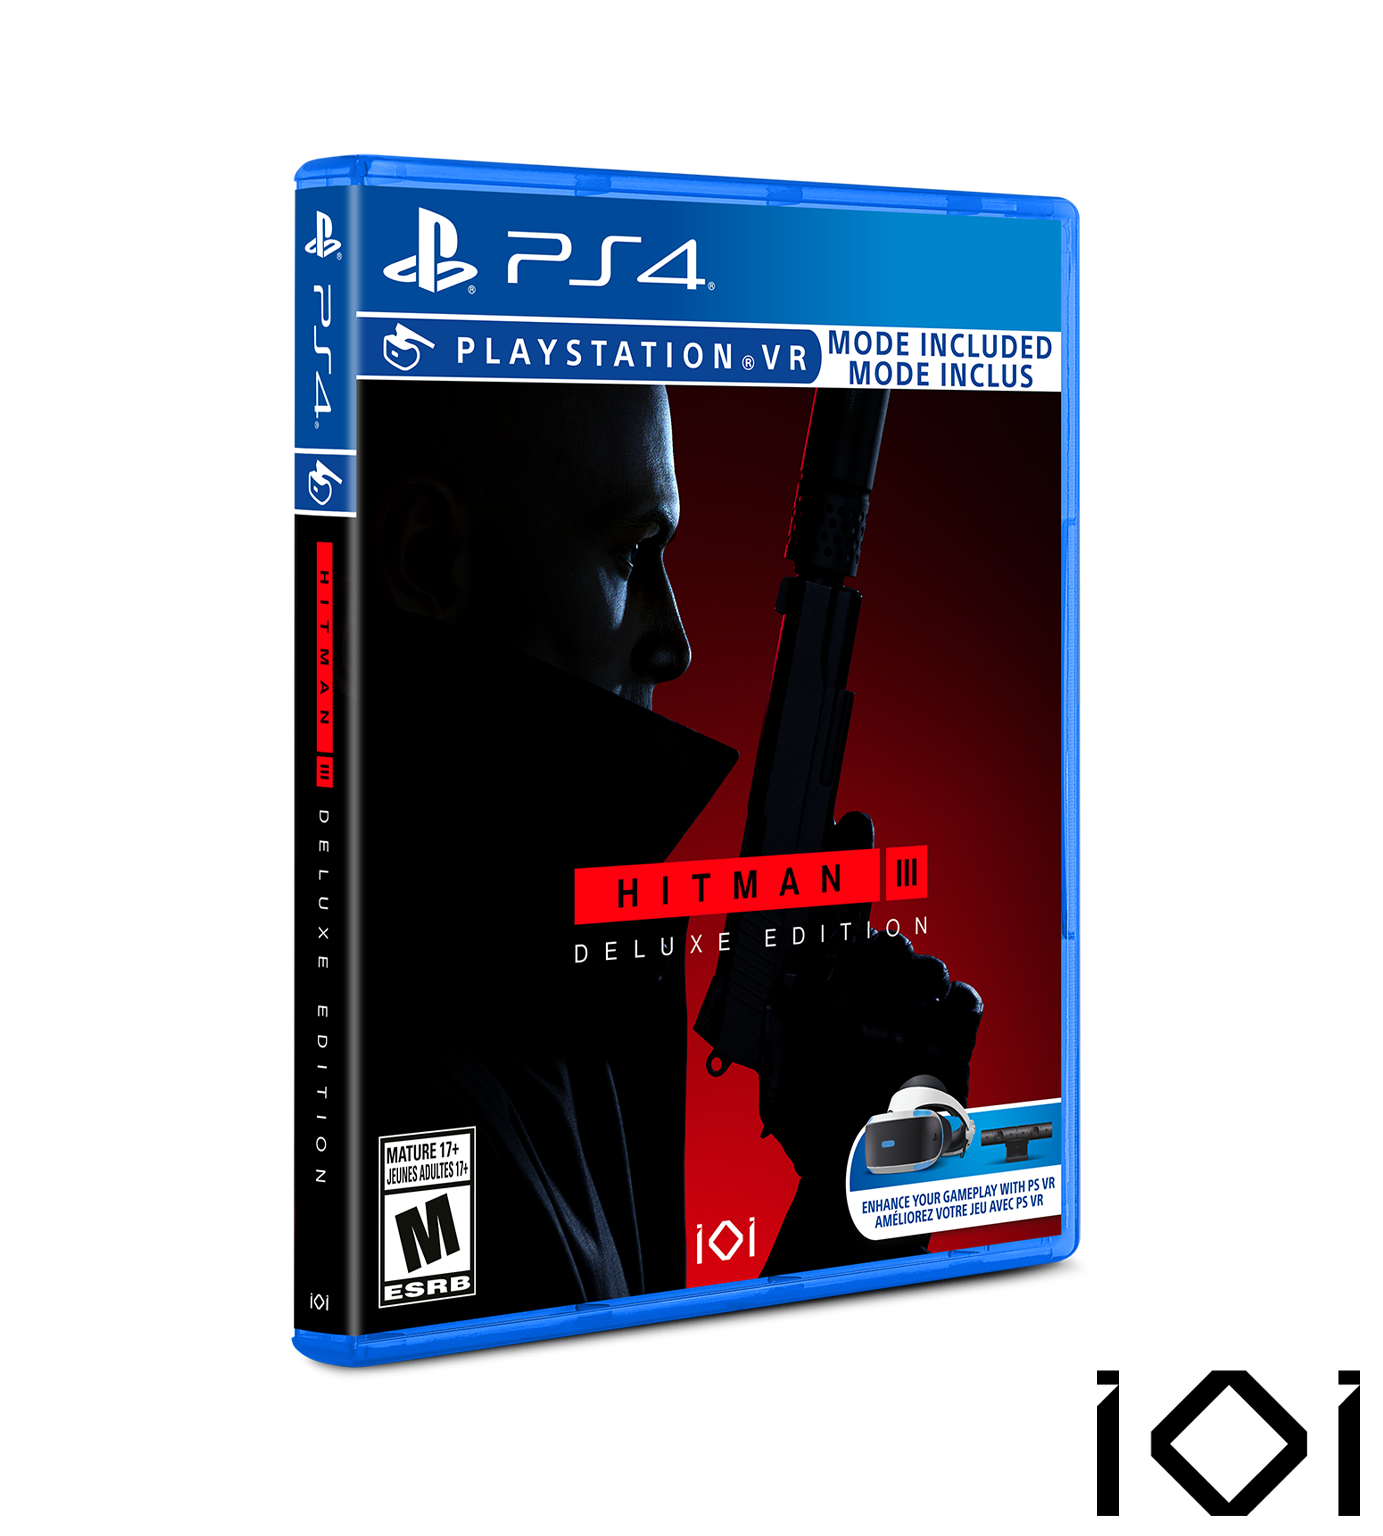 Hitman 3 Deluxe Edition (PS4) - Limited Run Games